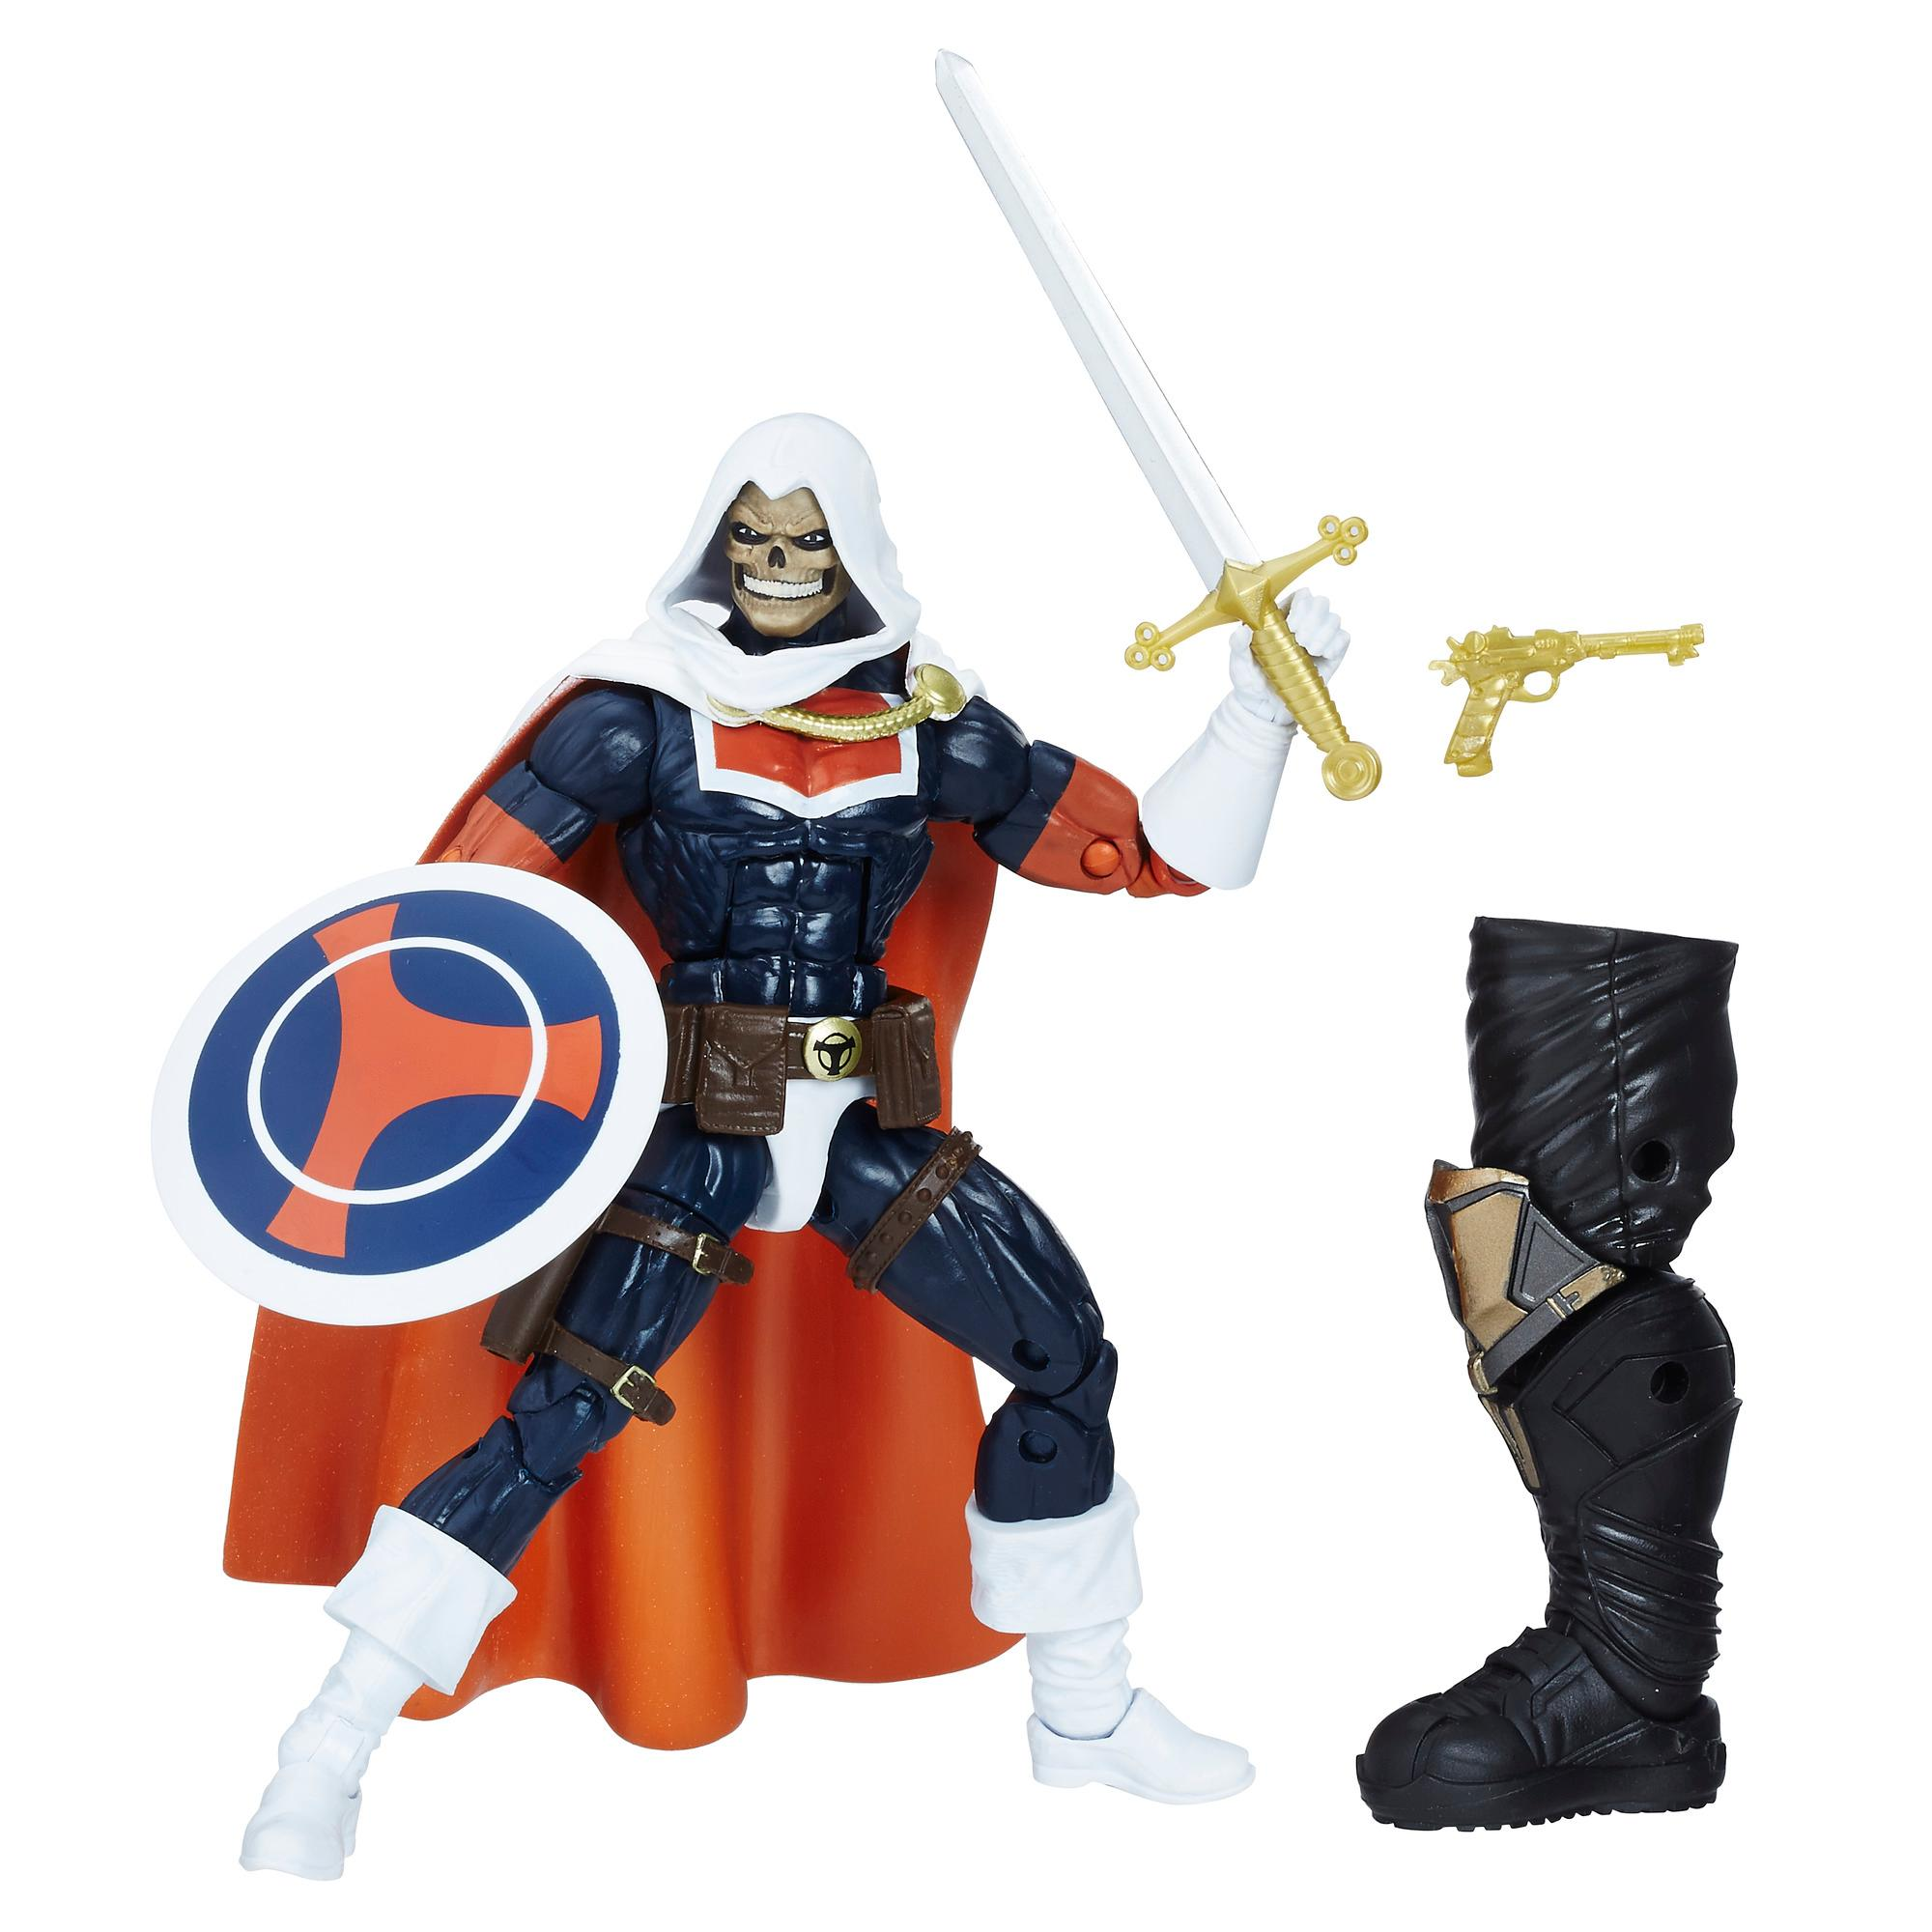 Avengers Marvel Legends Series 6-inch Taskmaster